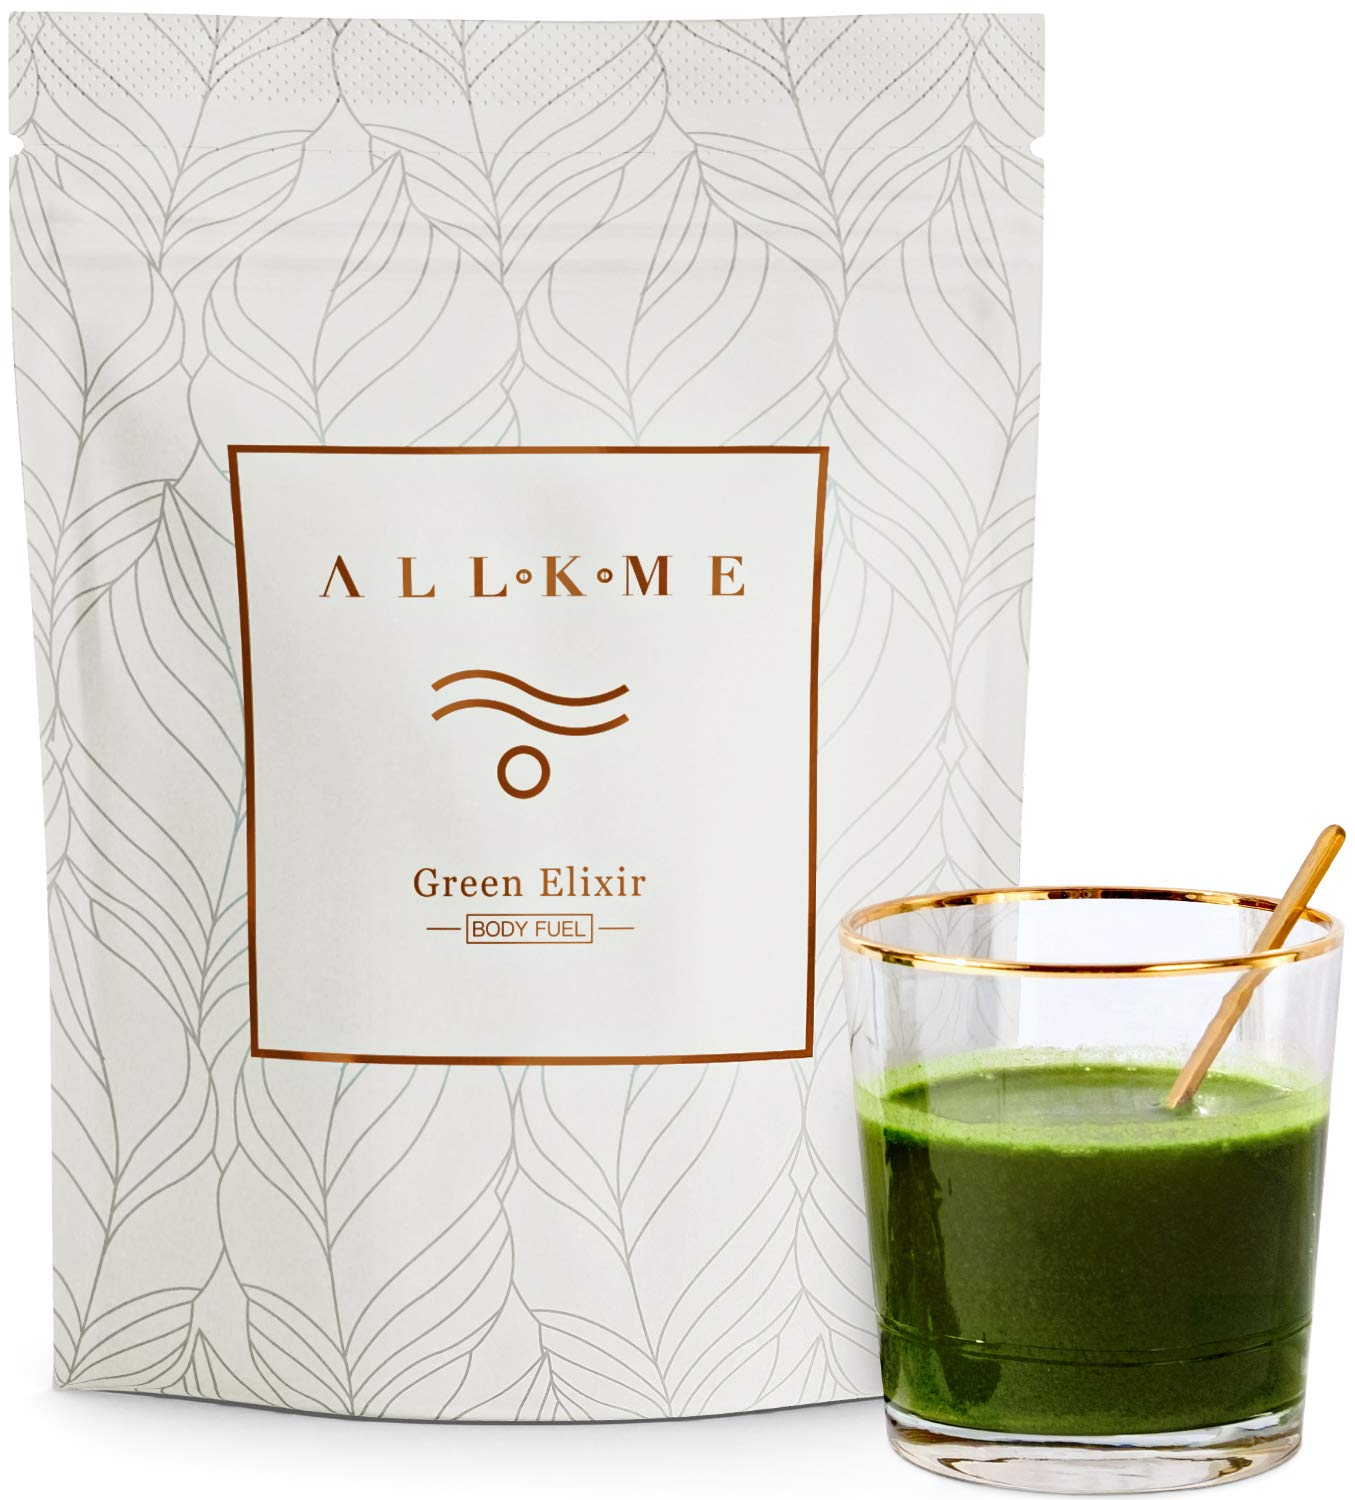 Super greens and Superfood Powder / Vegan protein powders / Detox drink with: green tea, pea protein, psyllium husk, spirulina chlorella, aloe vera, turmeric, wheatgrass, probiotics for adults product image